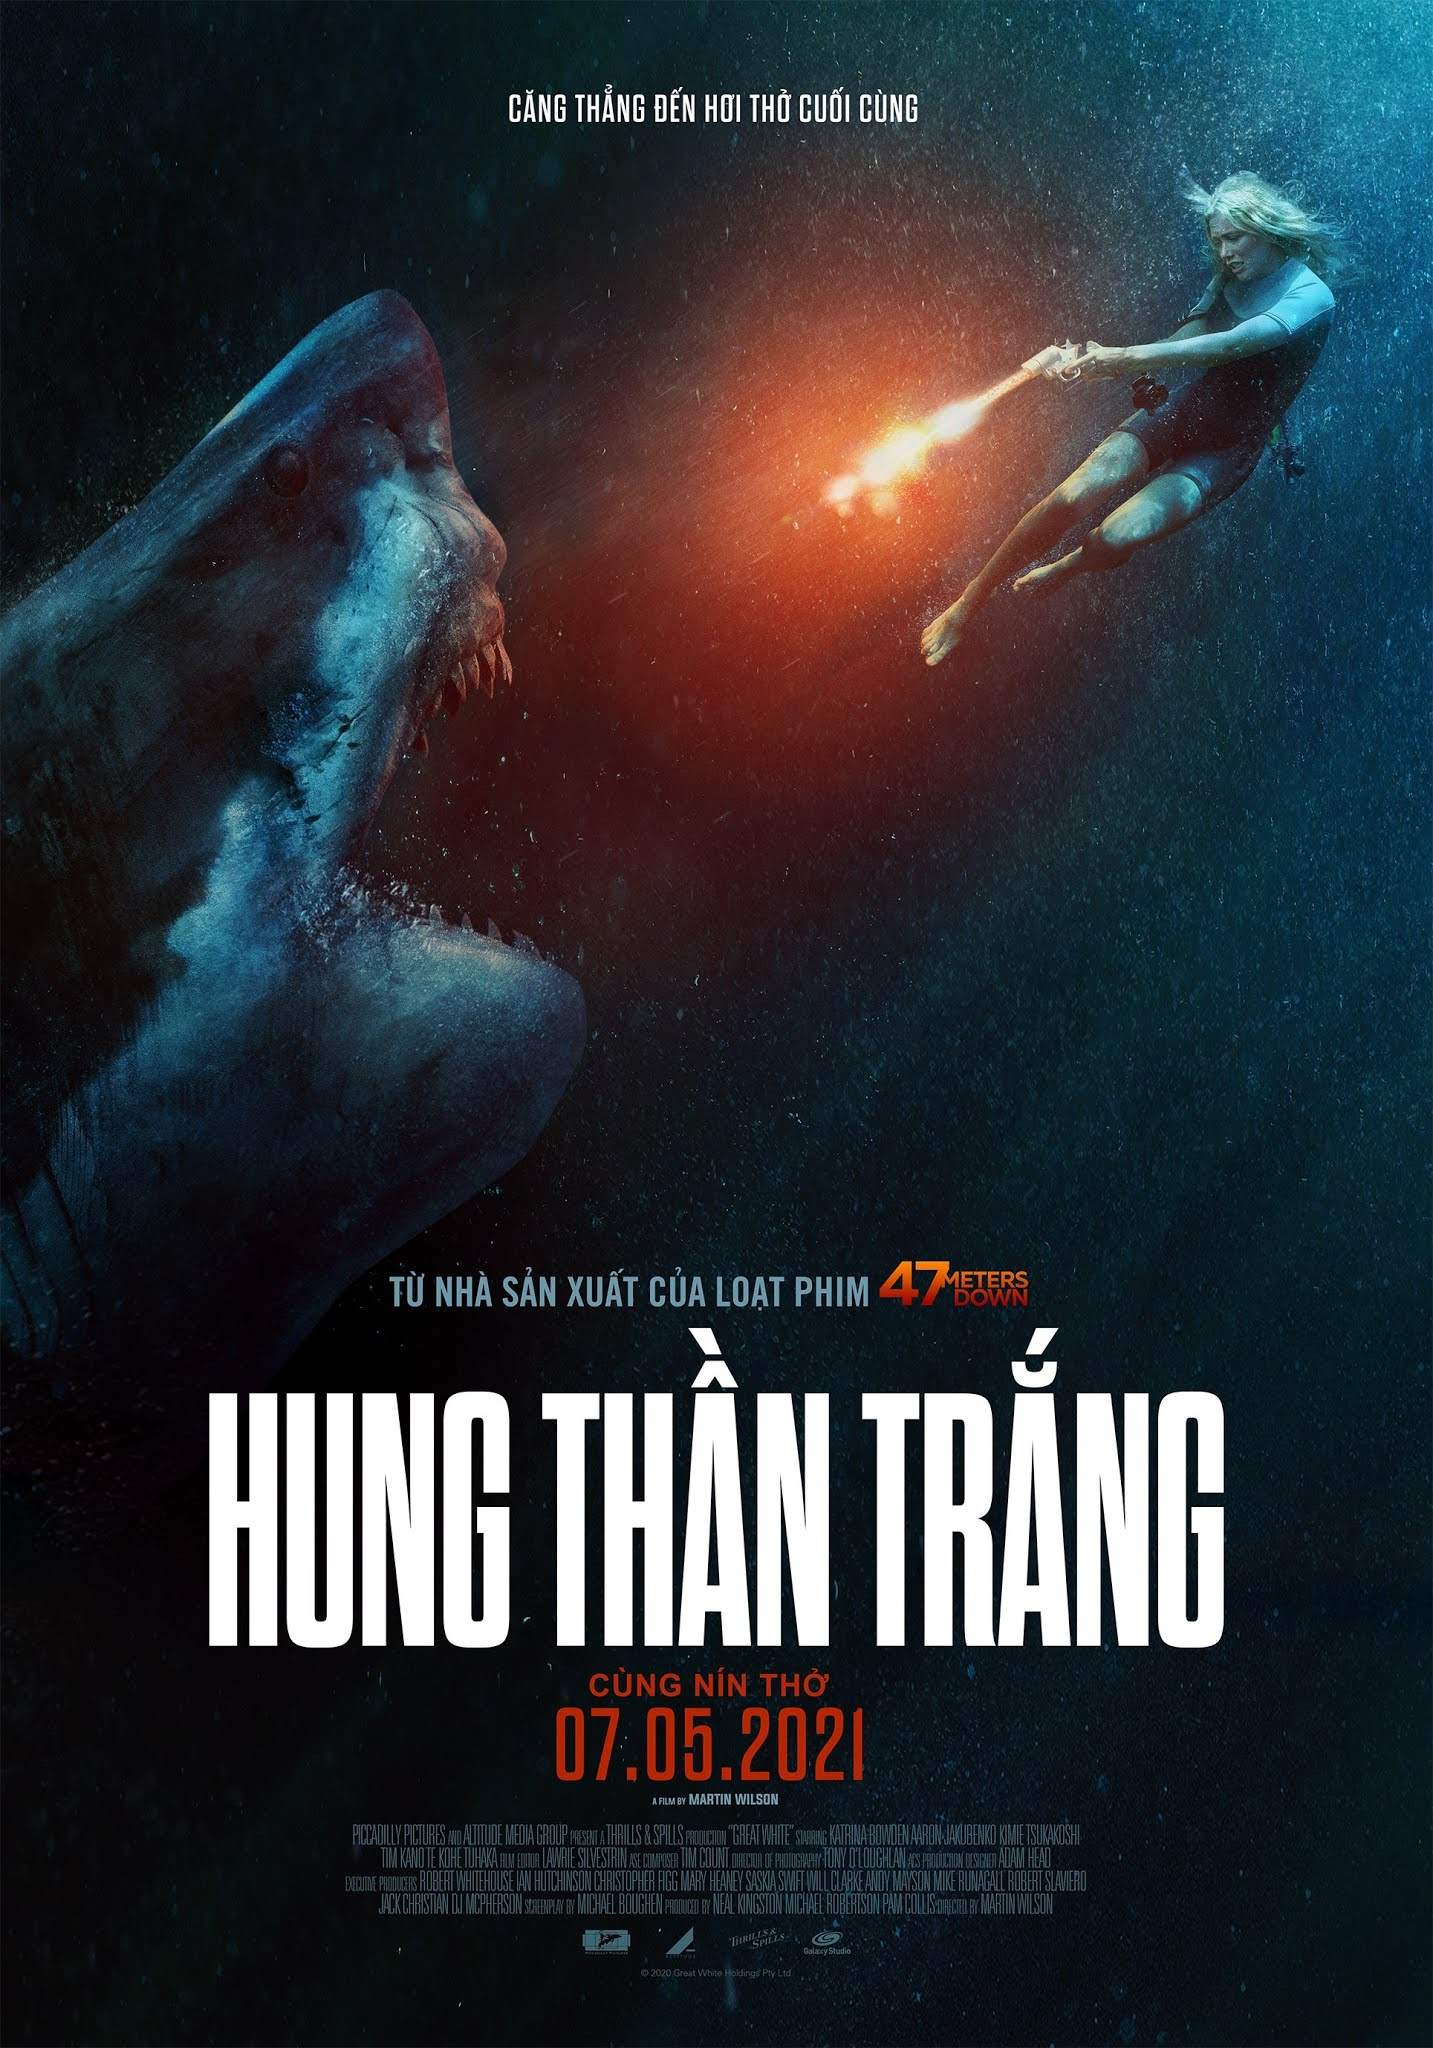 Hung Thần Trắng - Great White (2021) (2021)